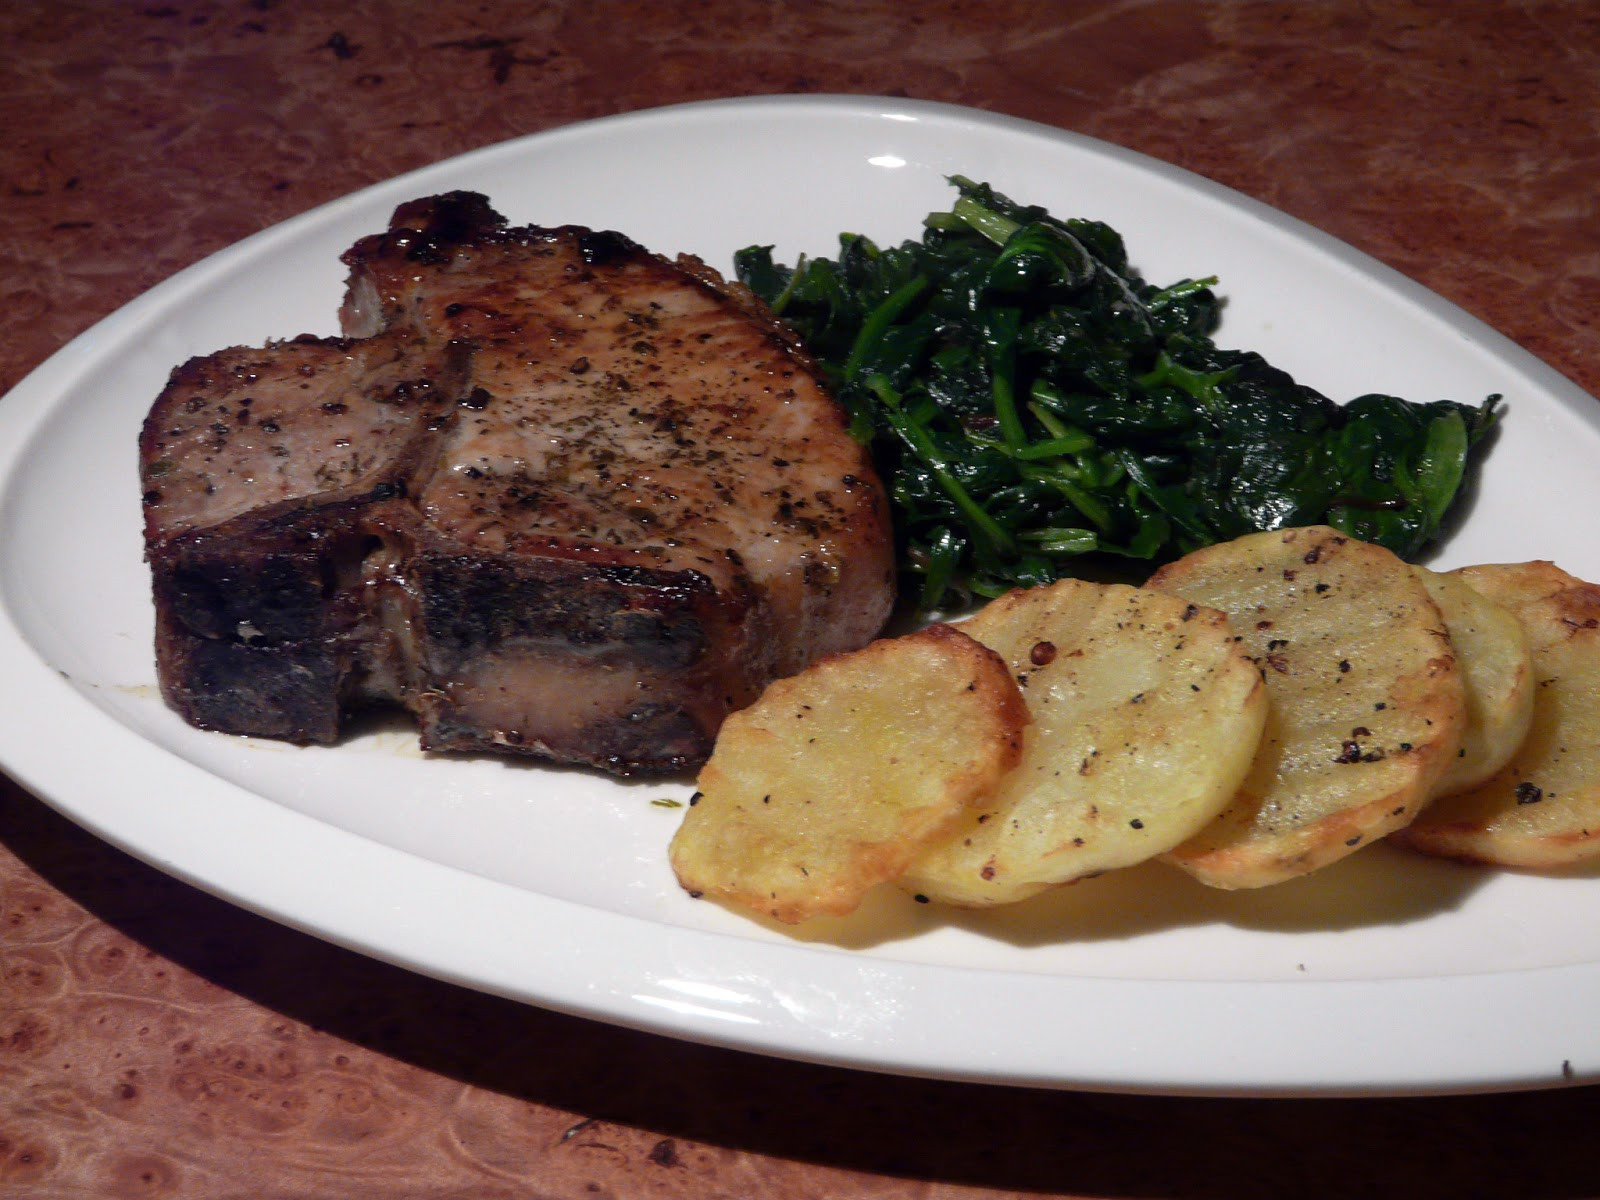 Oven Roasted Pork Chops  Thibeault s Table Pork and Beef Recent Meals 2